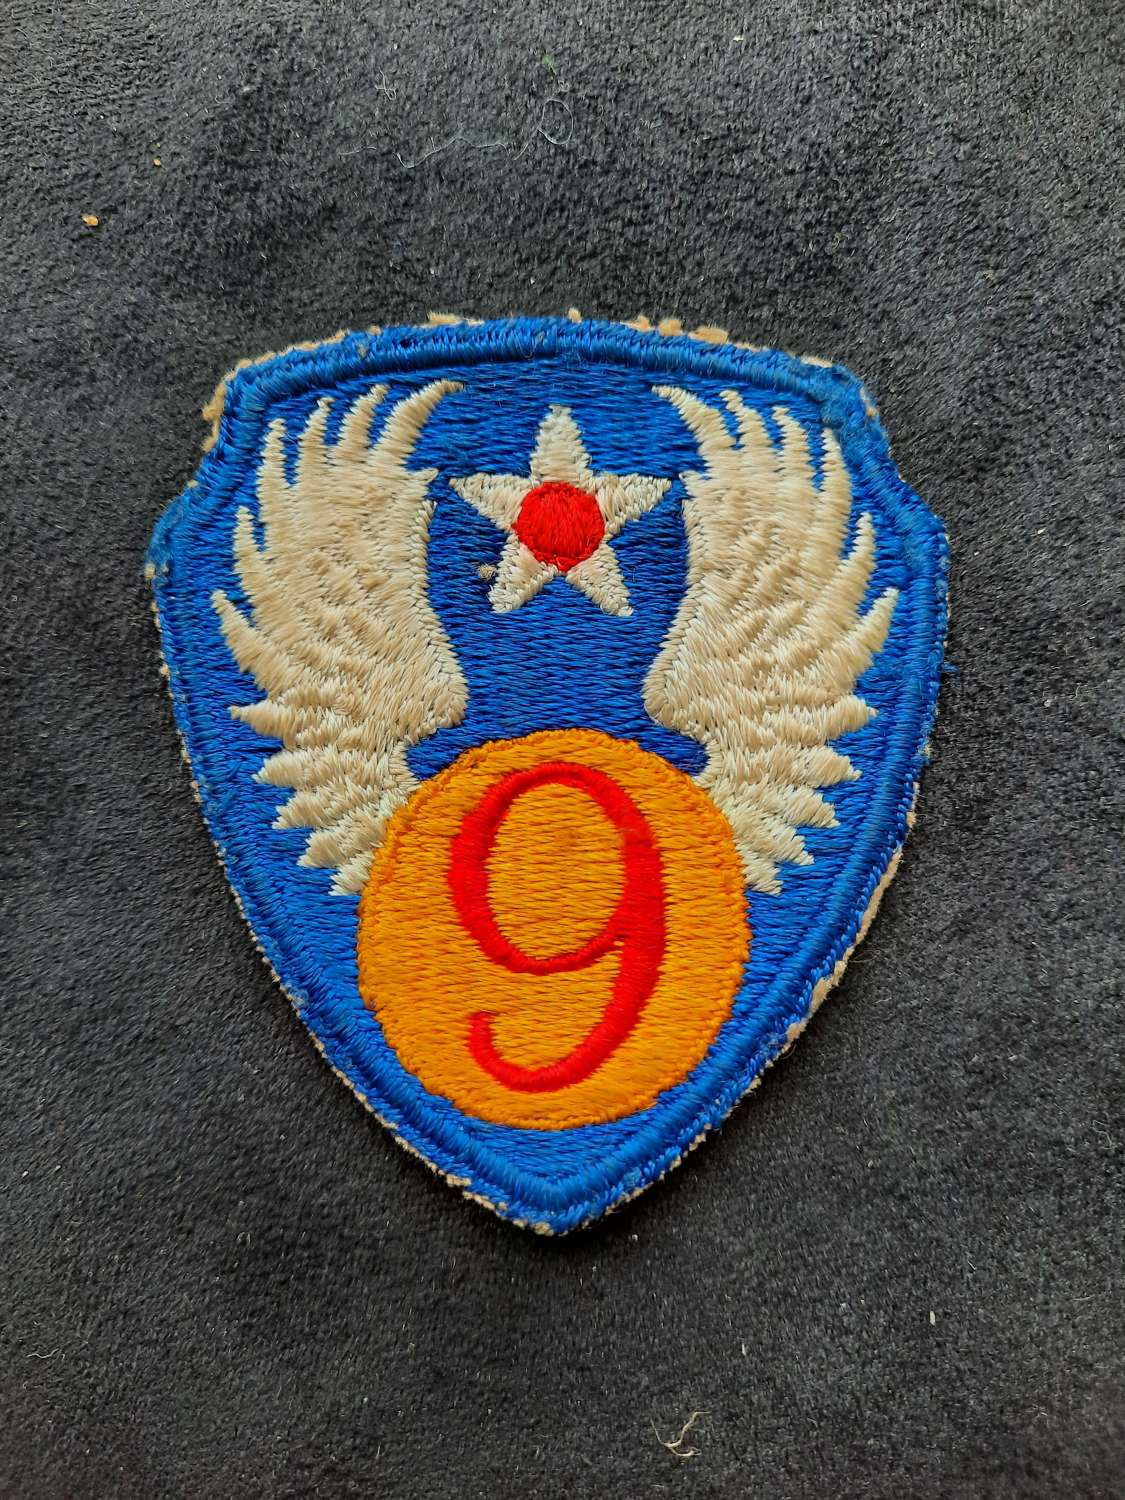 USAAF 9th Air Force Patch